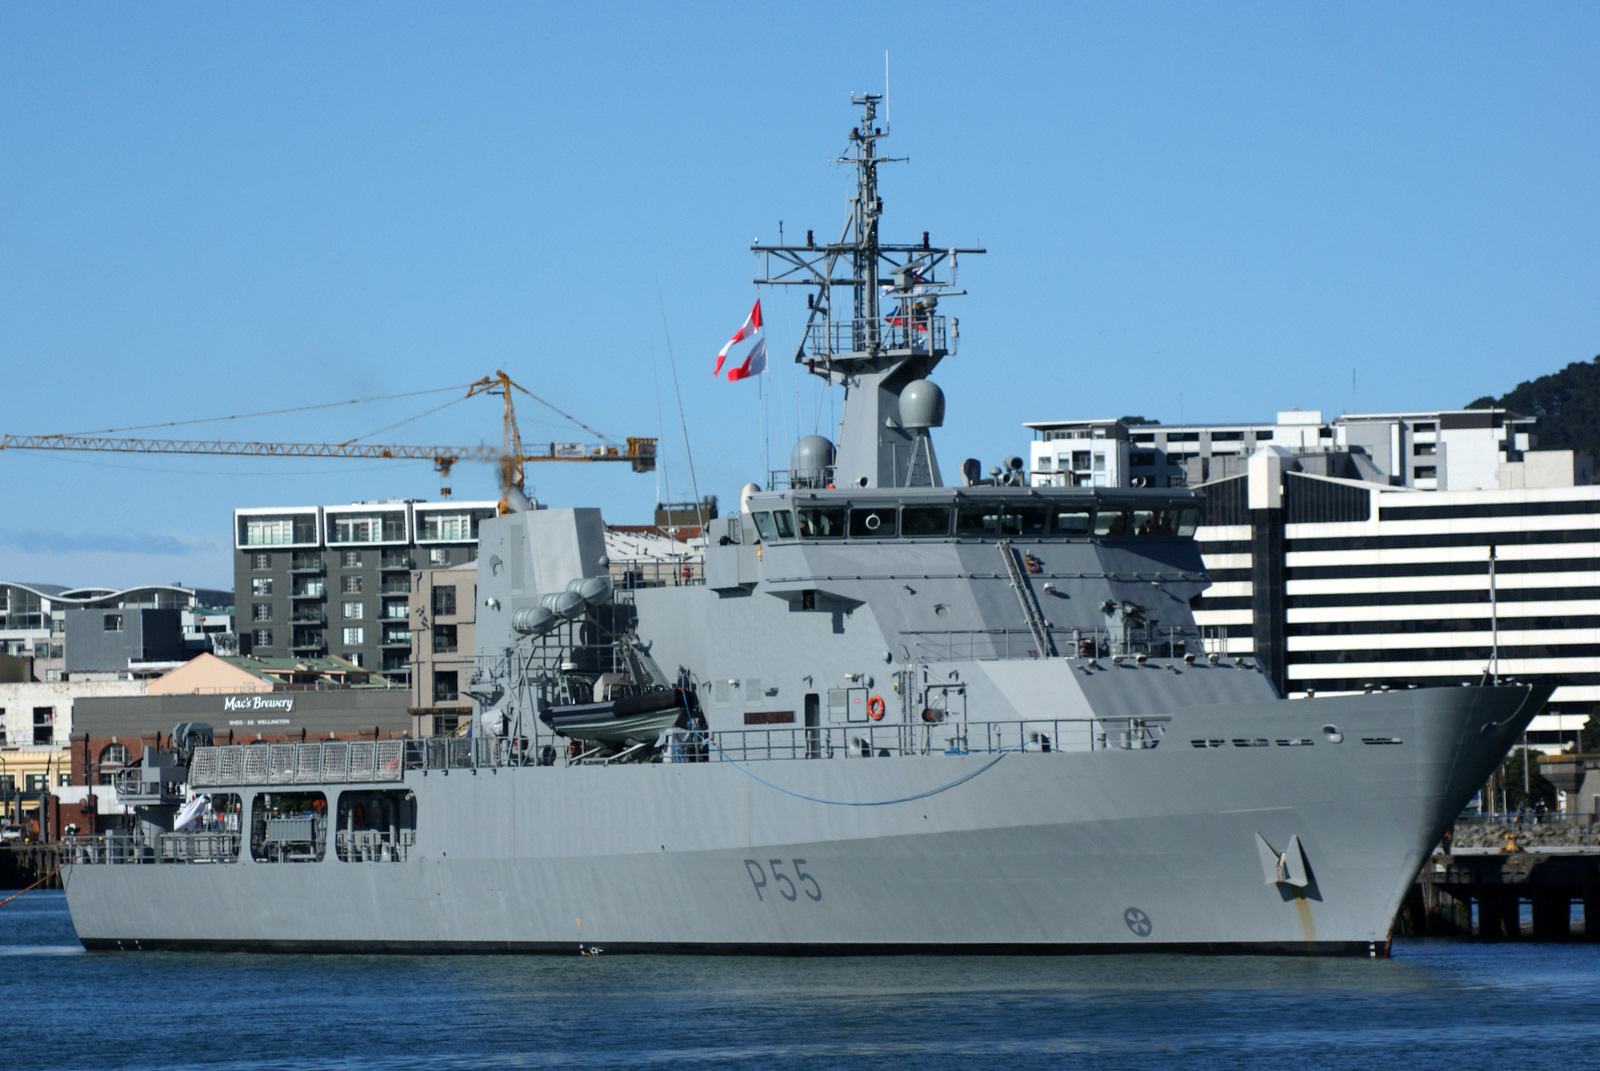 http://upload.wikimedia.org/wikipedia/commons/f/ff/HMNZS_Wellington.JPG